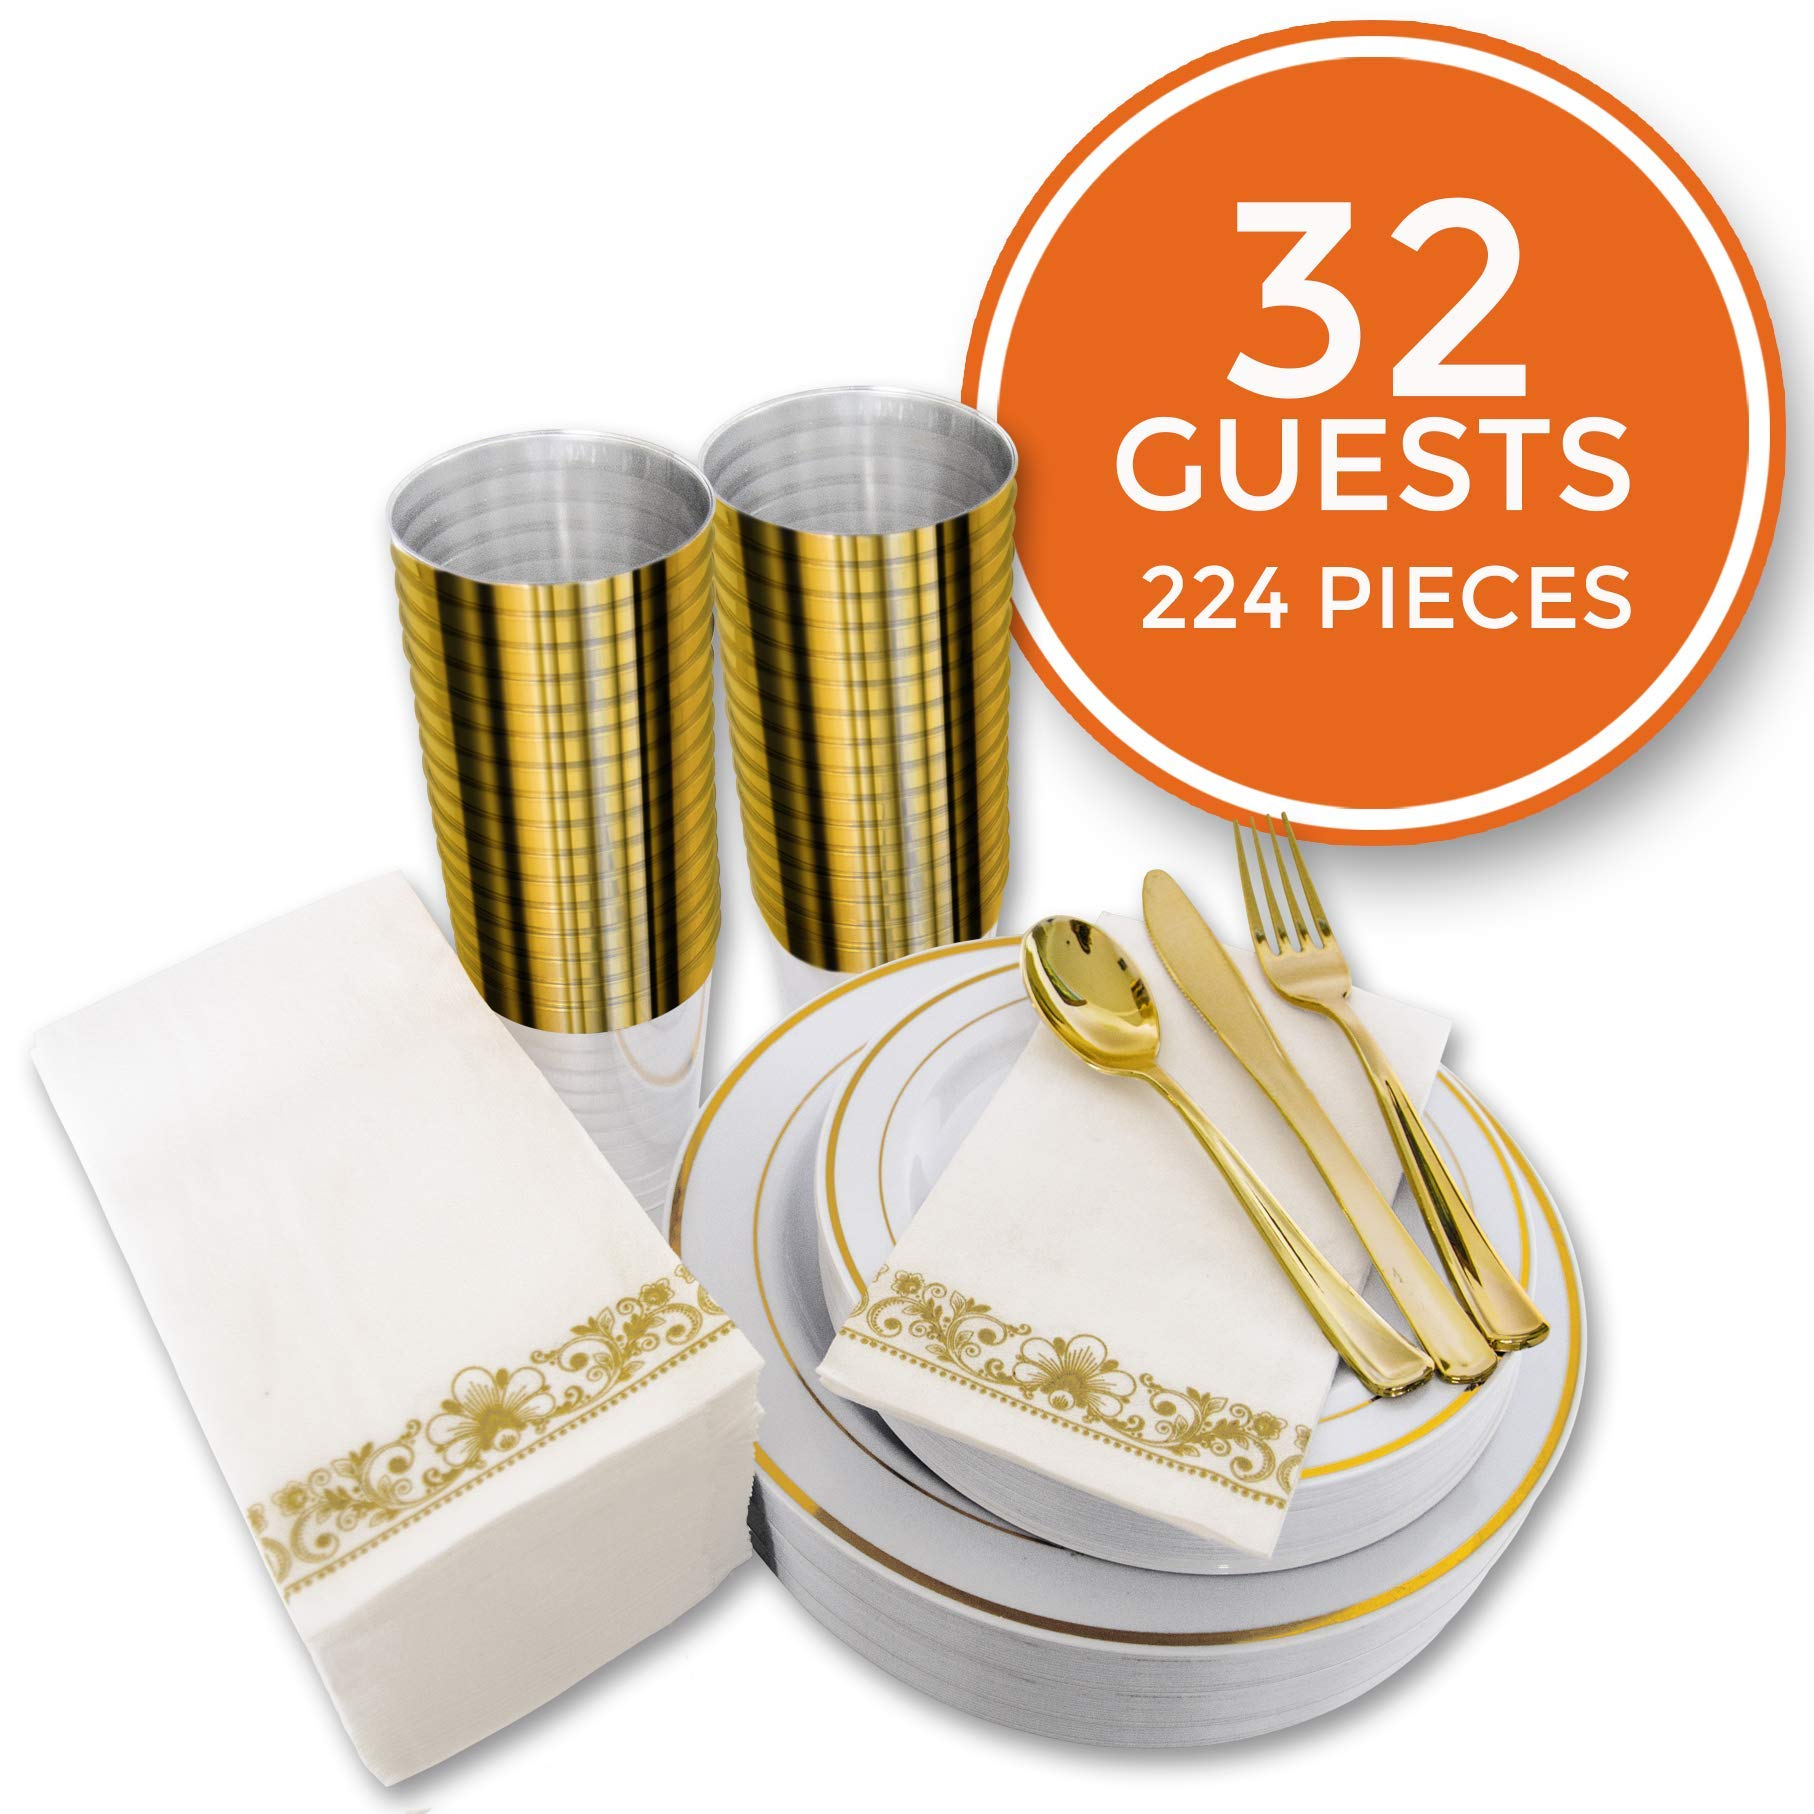 224 PCS Gold Disposable Dinnerware Set for 32 Guest. Gold Rimmed Plastic Dinner Plates with Gold Rimmed Cups Silverware and Napkins. Ideal for Parties, Weddings, Baby Showers, Thanksgivings. by Stellar Home & Living